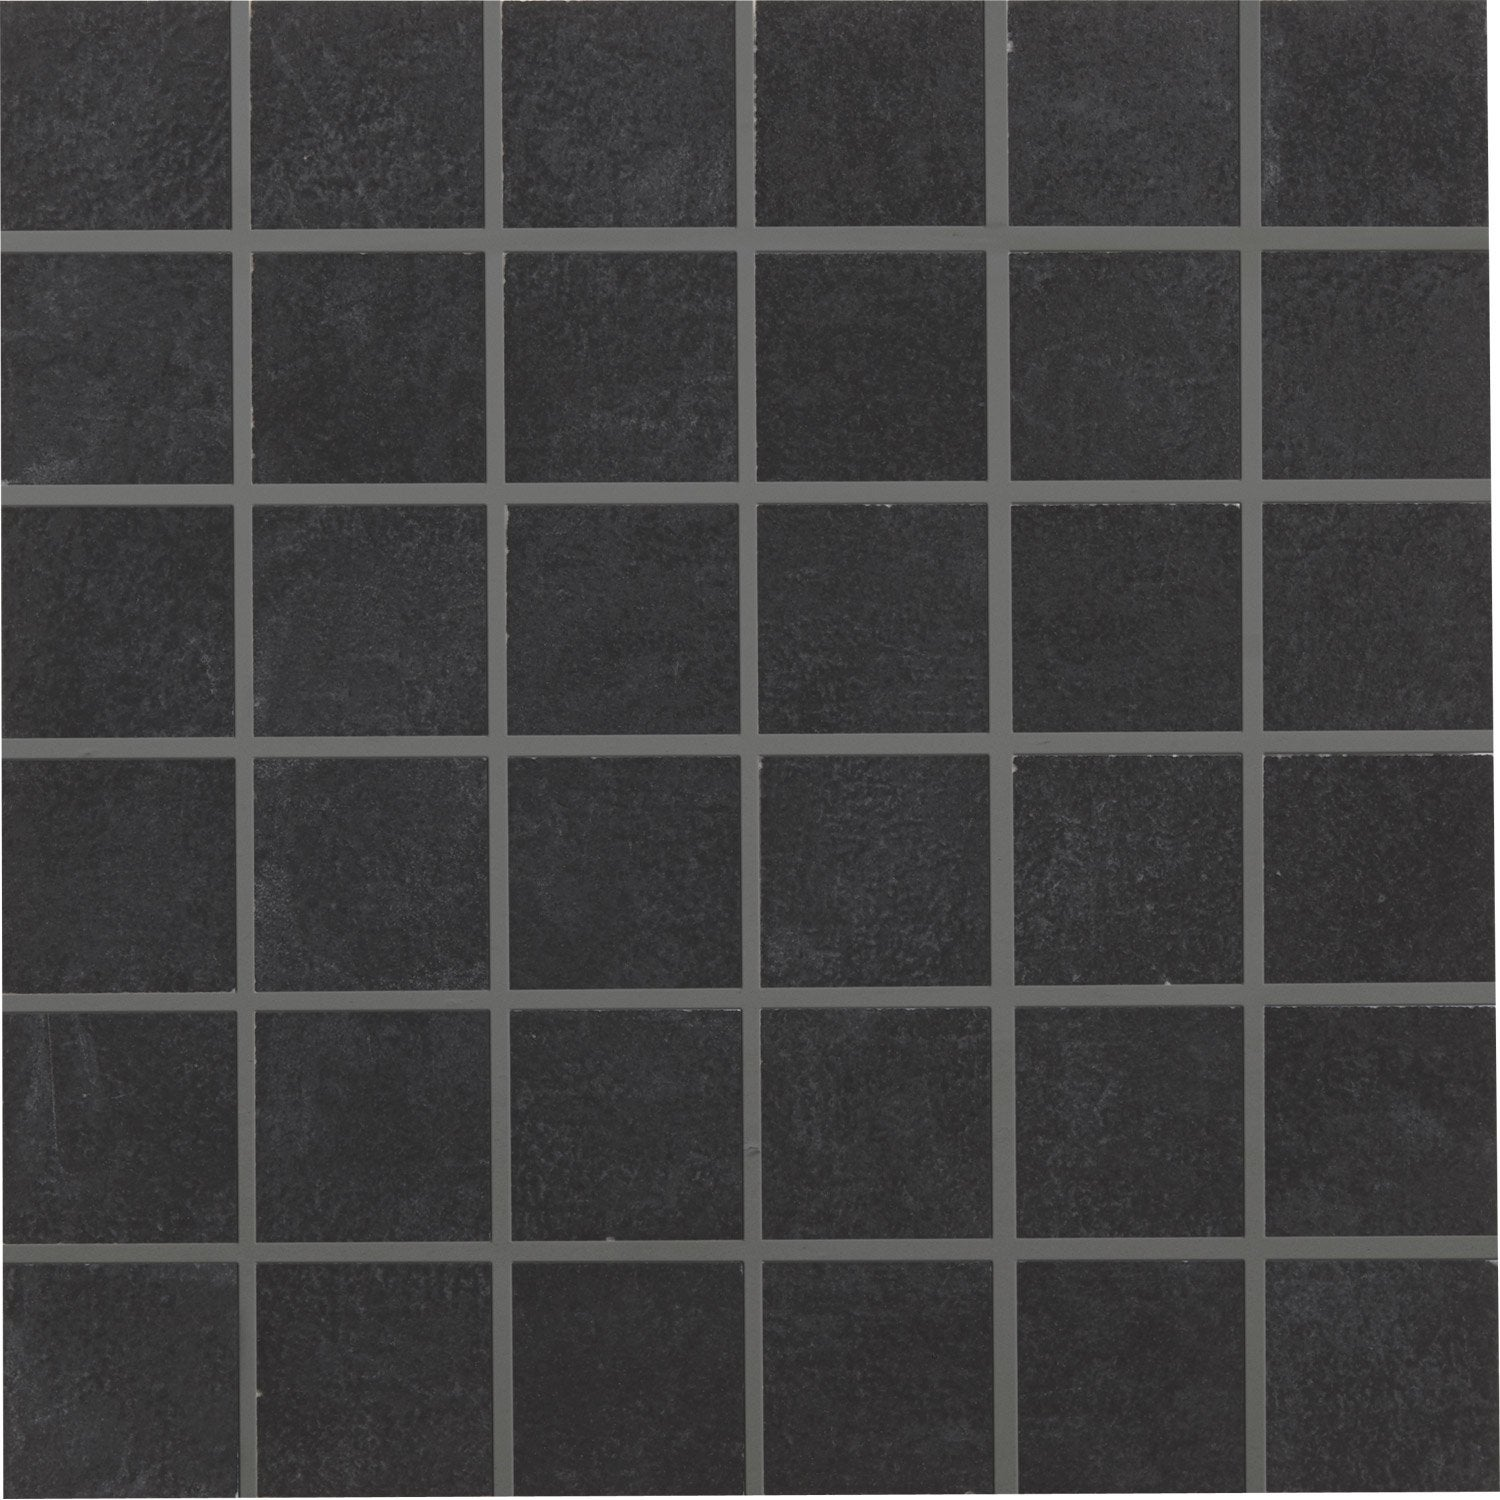 Carrelage 5x5 noir for Joint carrelage noir